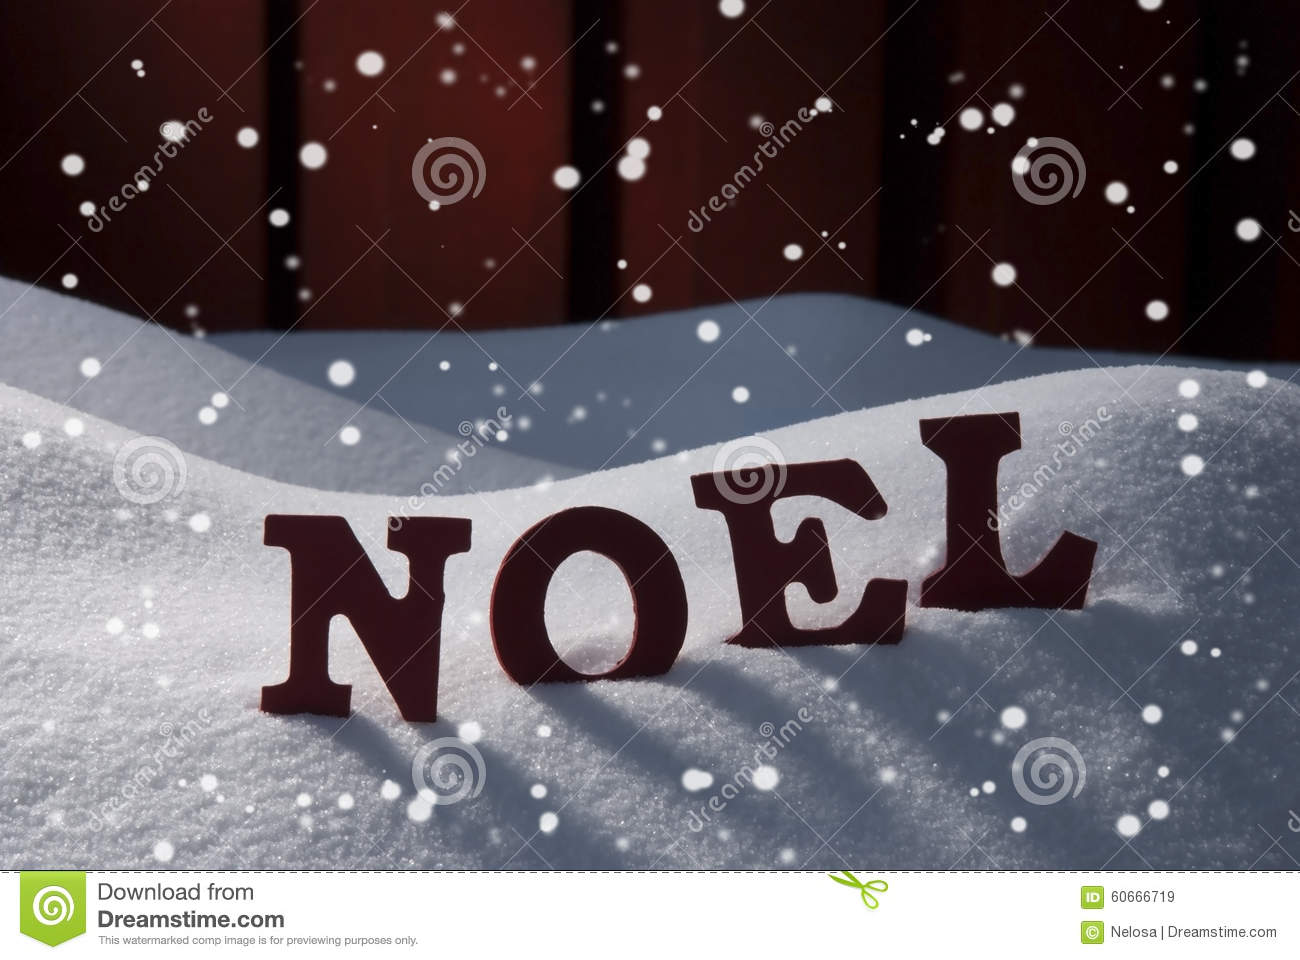 Card With Snow And Word Natal Mean Christmas, Snowflakes Stock Image ...